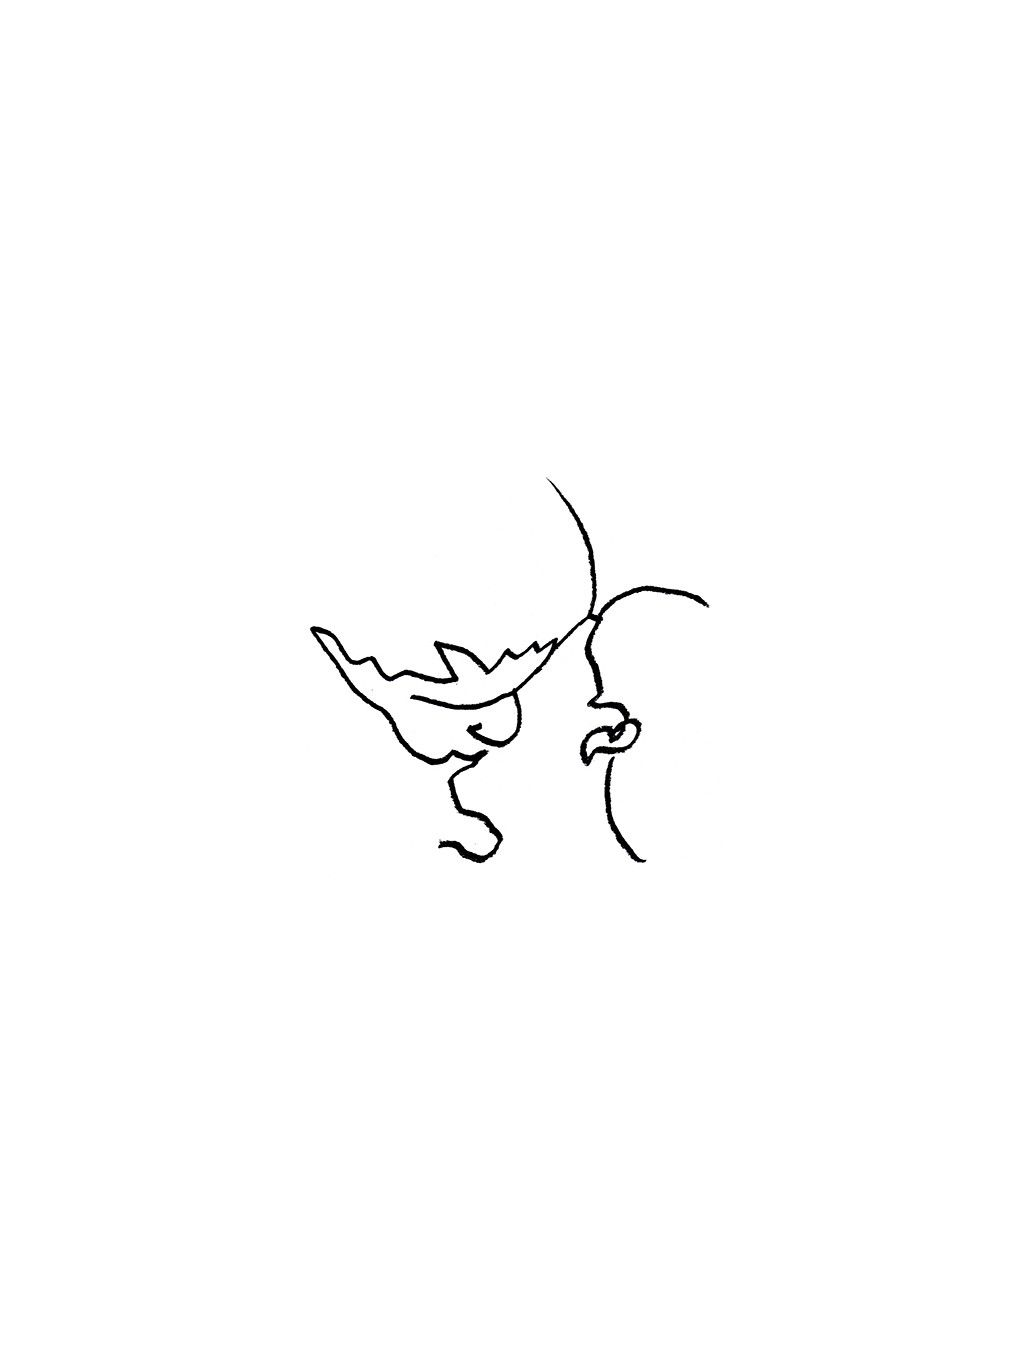 1024x1365 kiss how to draw hands, kiss, artwork